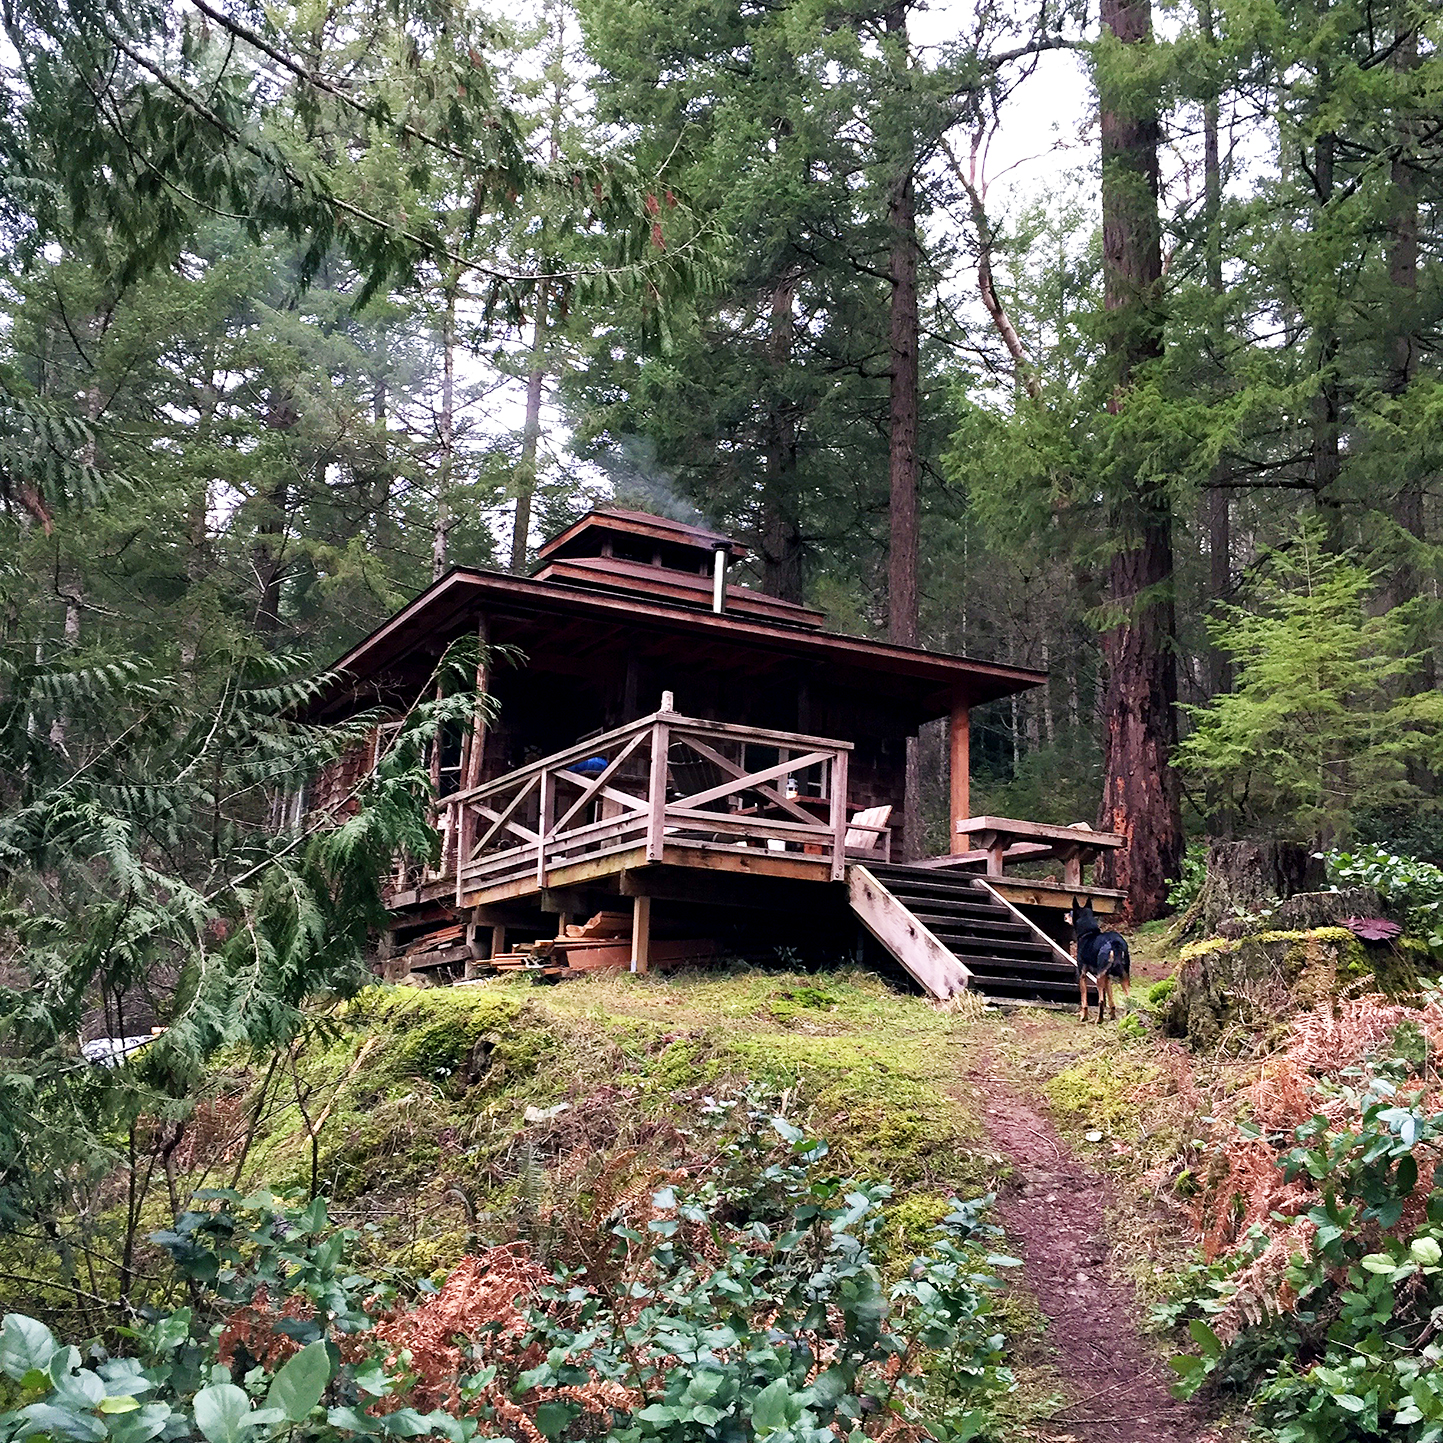 """When the property was originally purchased by a friend's family 35 years ago, the """"Cabin"""", as it is so aptly named, was just a simple one room logger's cabin. But over the years it has grown with the family into this perfect three story hideaway."""